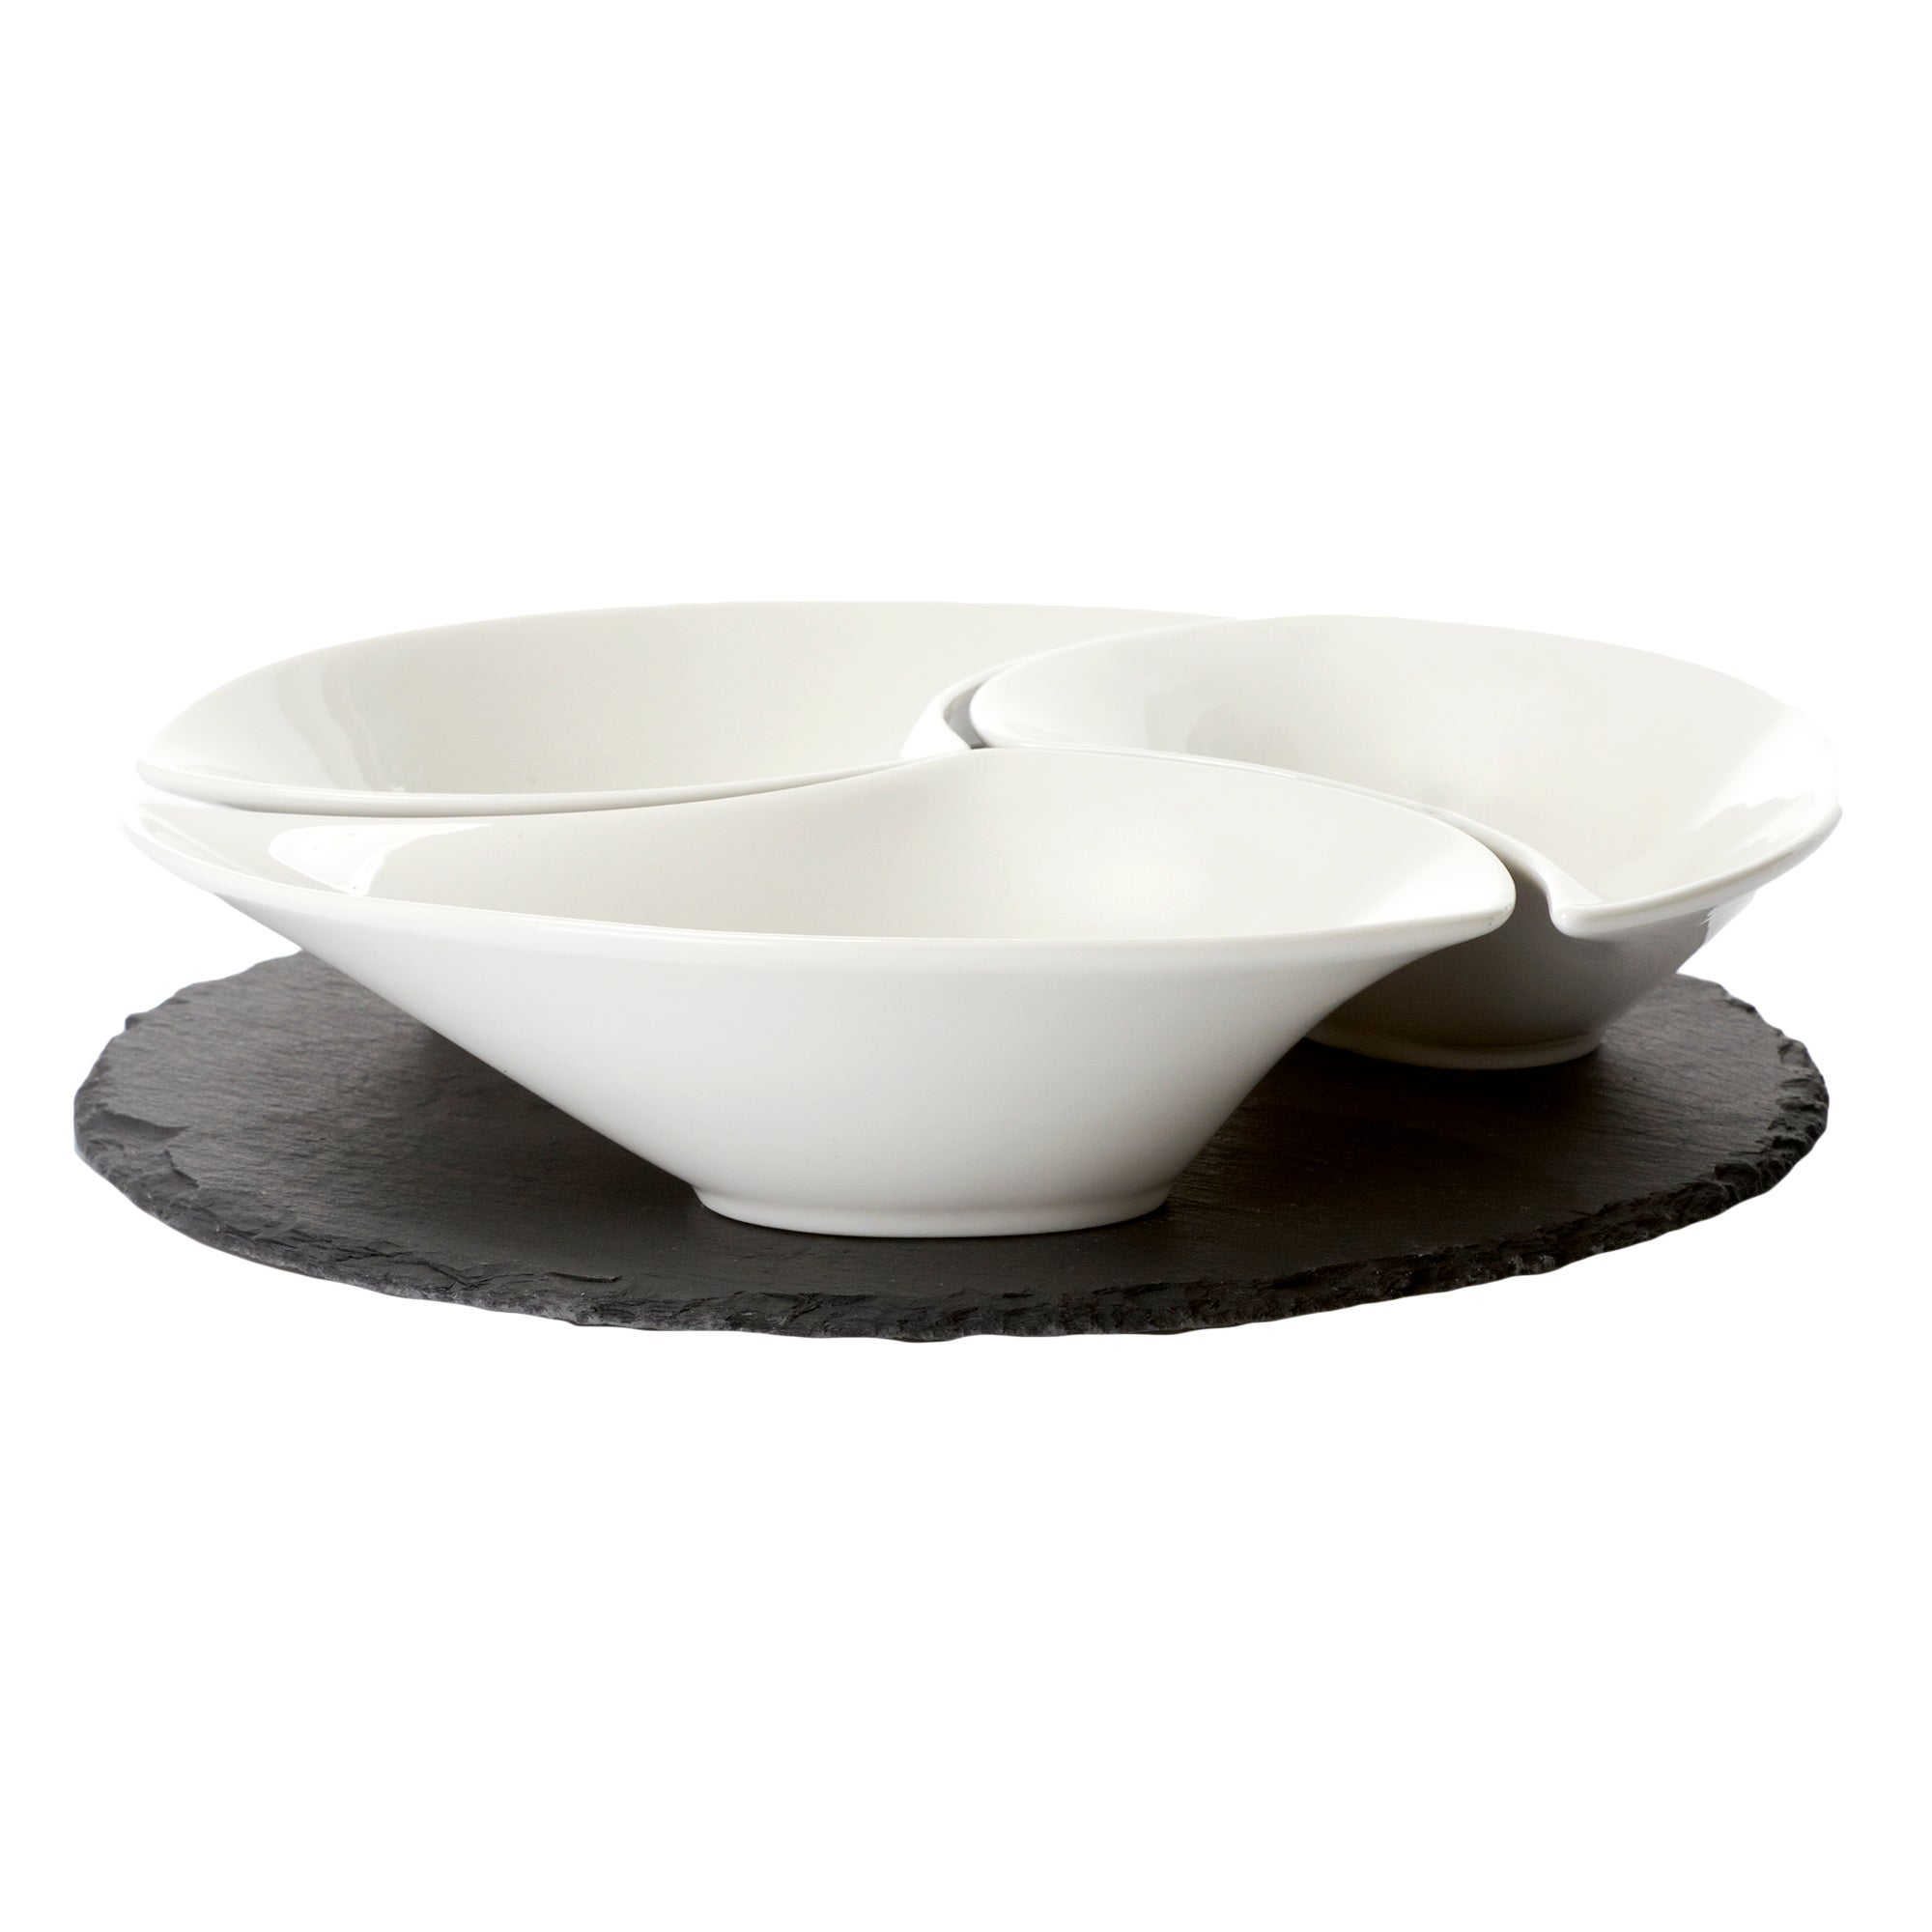 Slate Serving Tray and Bowls Set